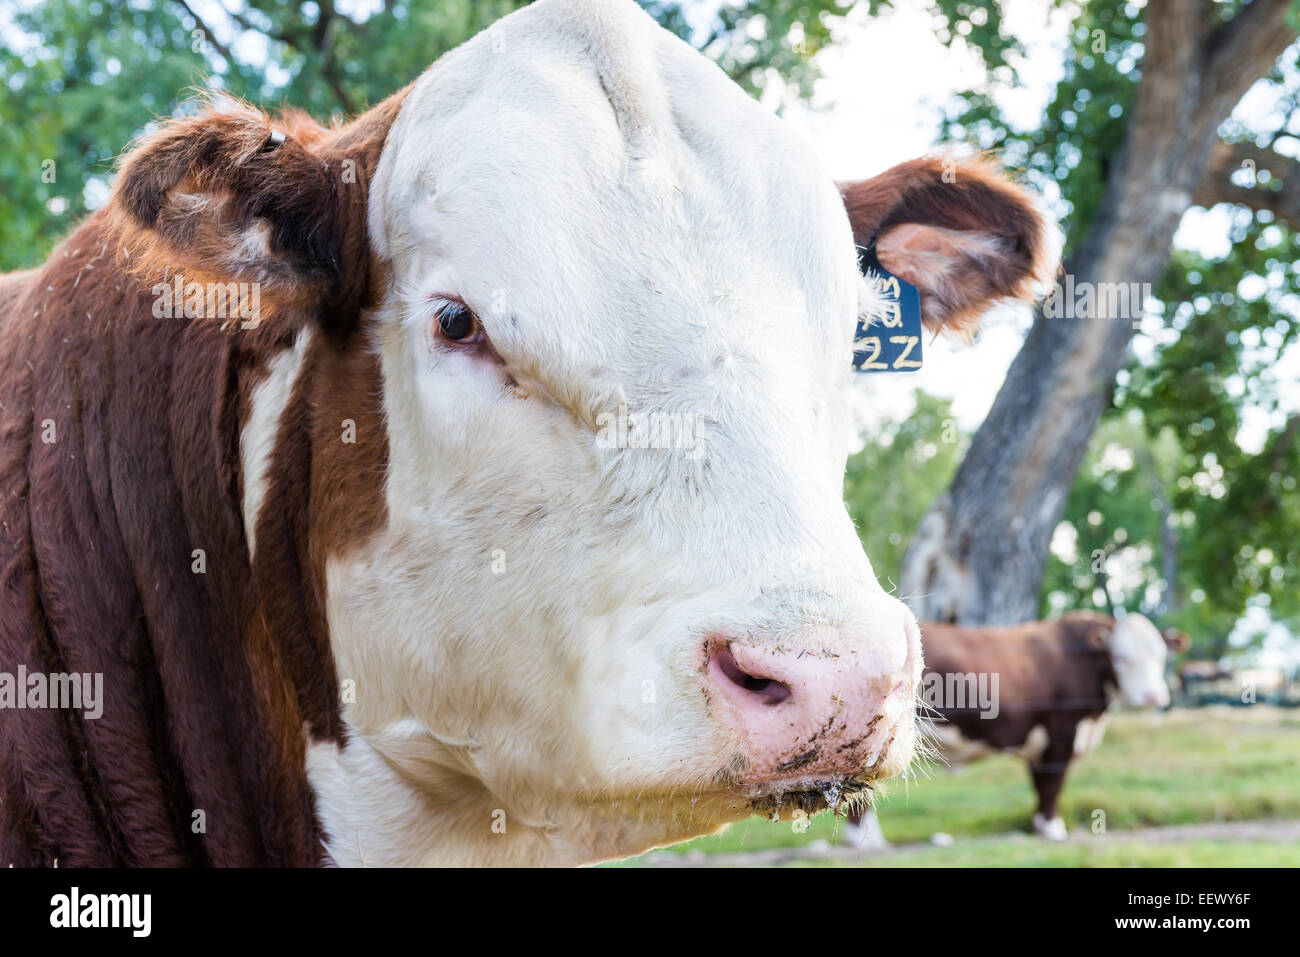 Semental Hereford bull or steer on a ranch, Wyoming, US - Stock Image